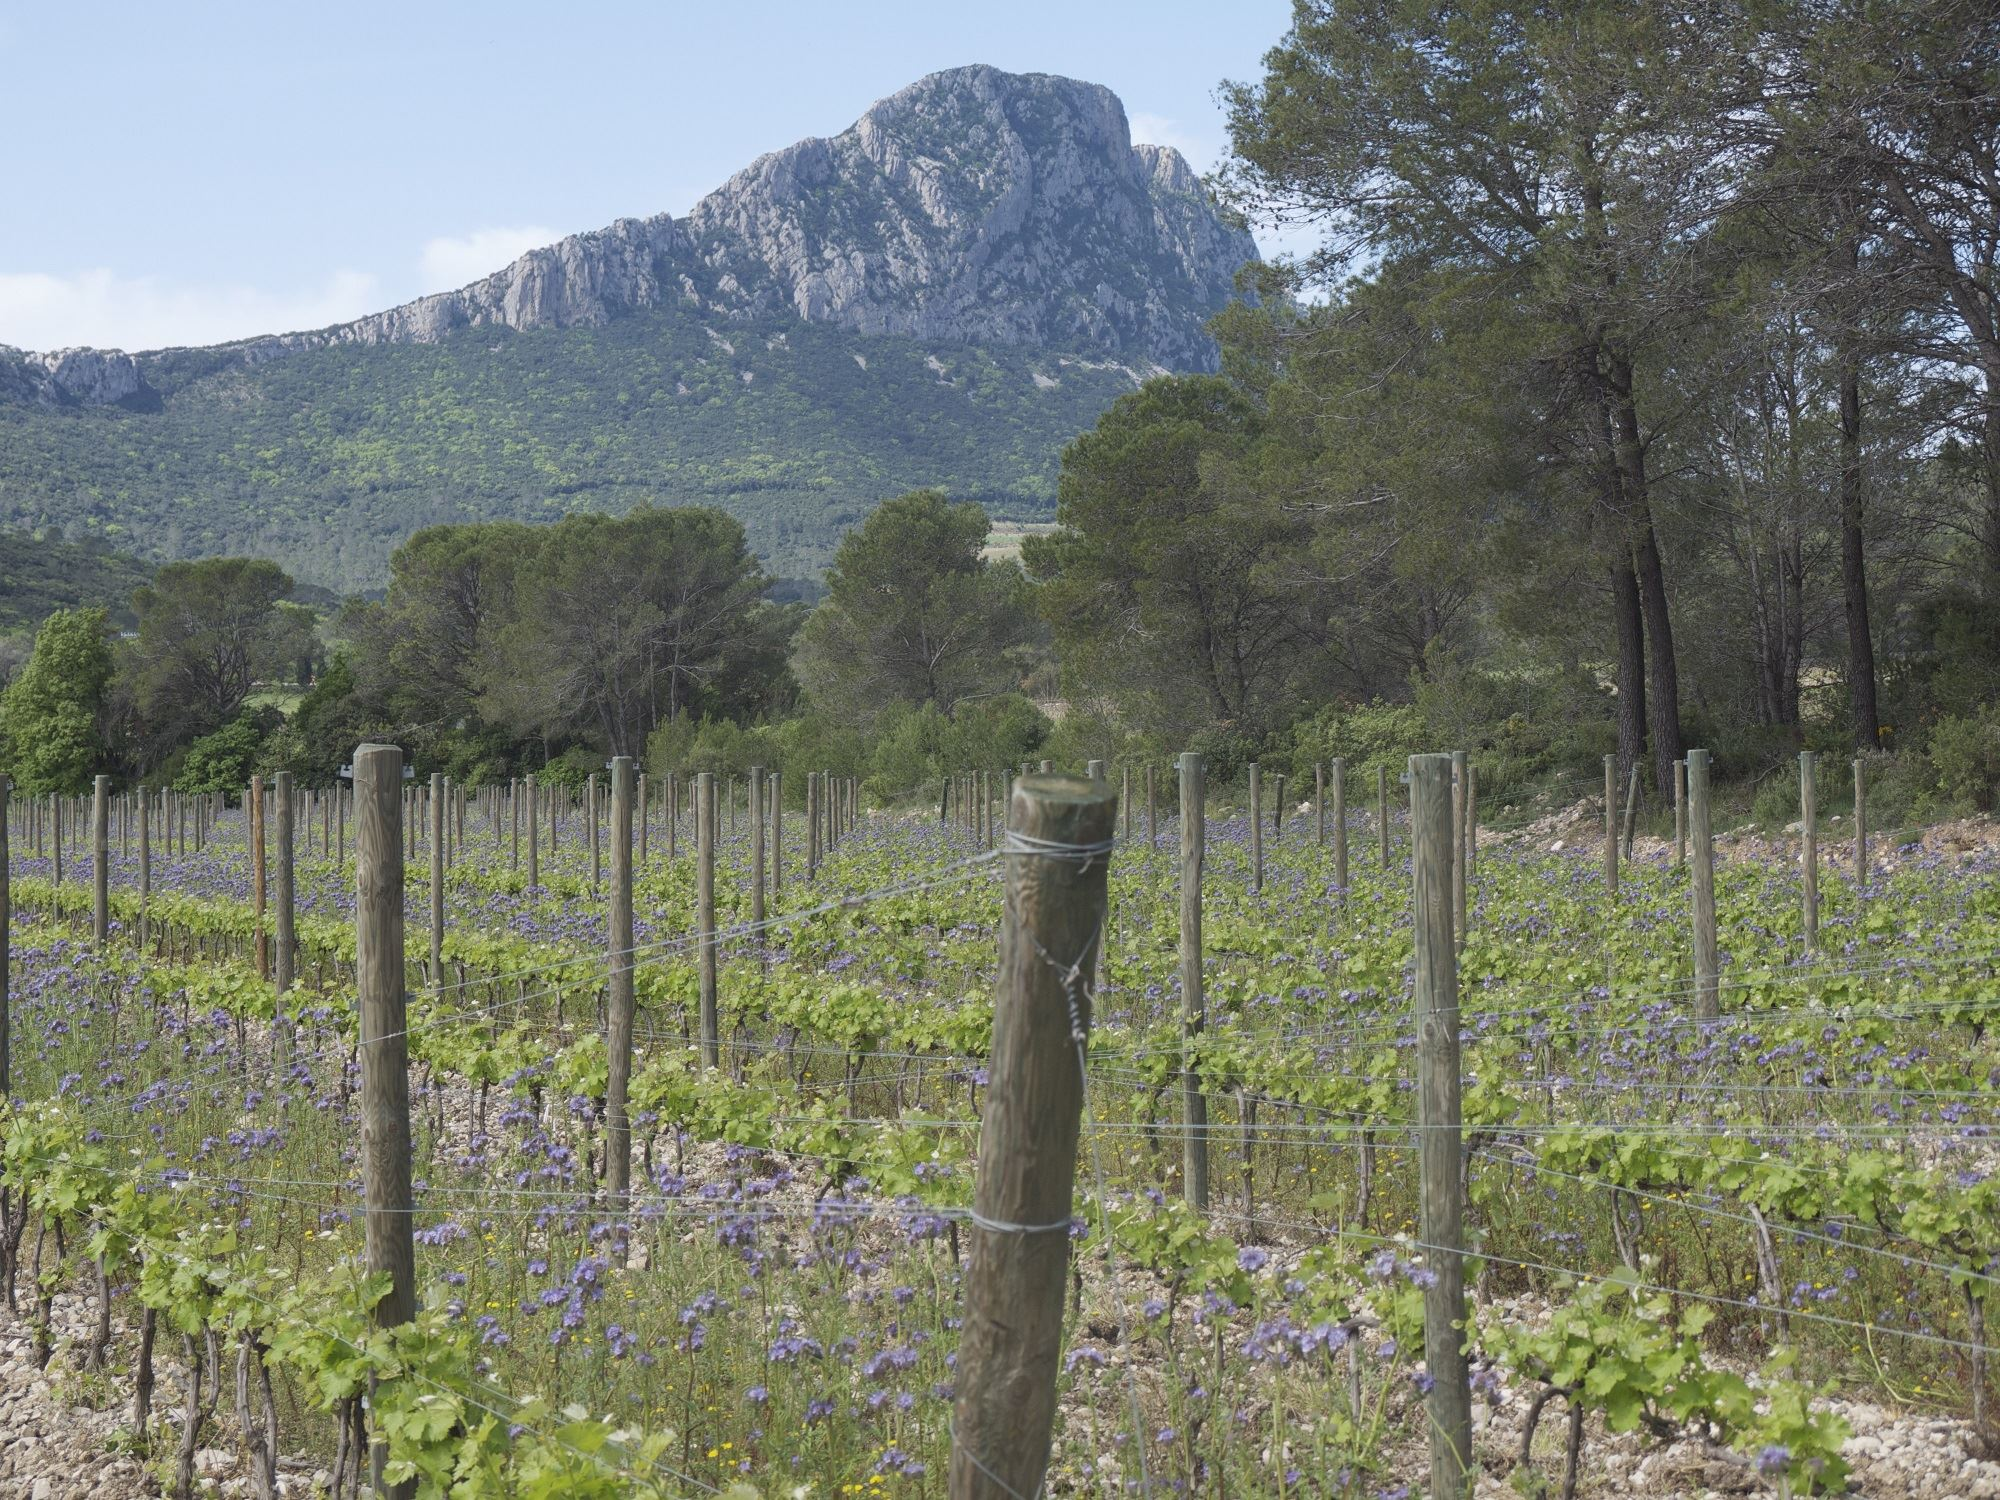 A Pic Saint Loup wine experience - Instant Terroir